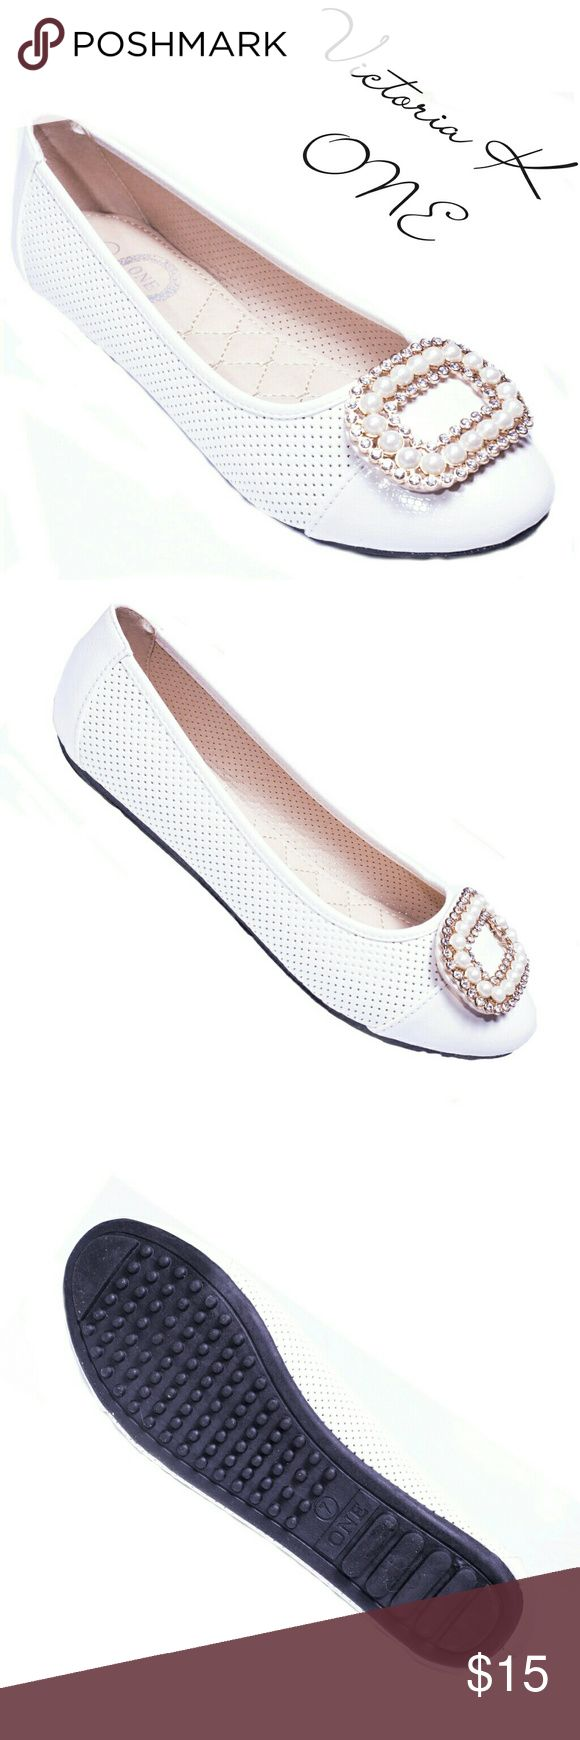 """ONE Tory K Women Buckle Flats,  b-2055, Sand Brand new Victoria K perforated woman ballerina flats with a stylish stone-studded oversized buckle in the front. From the ONE collection. Soft cushioned sole, very comfortable. Bubbled bottom sole for extra traction. A true staple in ladies shoes fashion! Measurements: larger sizes run small. Size 8 measures 9.5 inches, sz 8.5 - 9 3/4"""", sz 9 - 10"""", sz 10 - 10.5"""", all half sizes are in 1/4 inch increments of each other. Tory K  Shoes Flats…"""